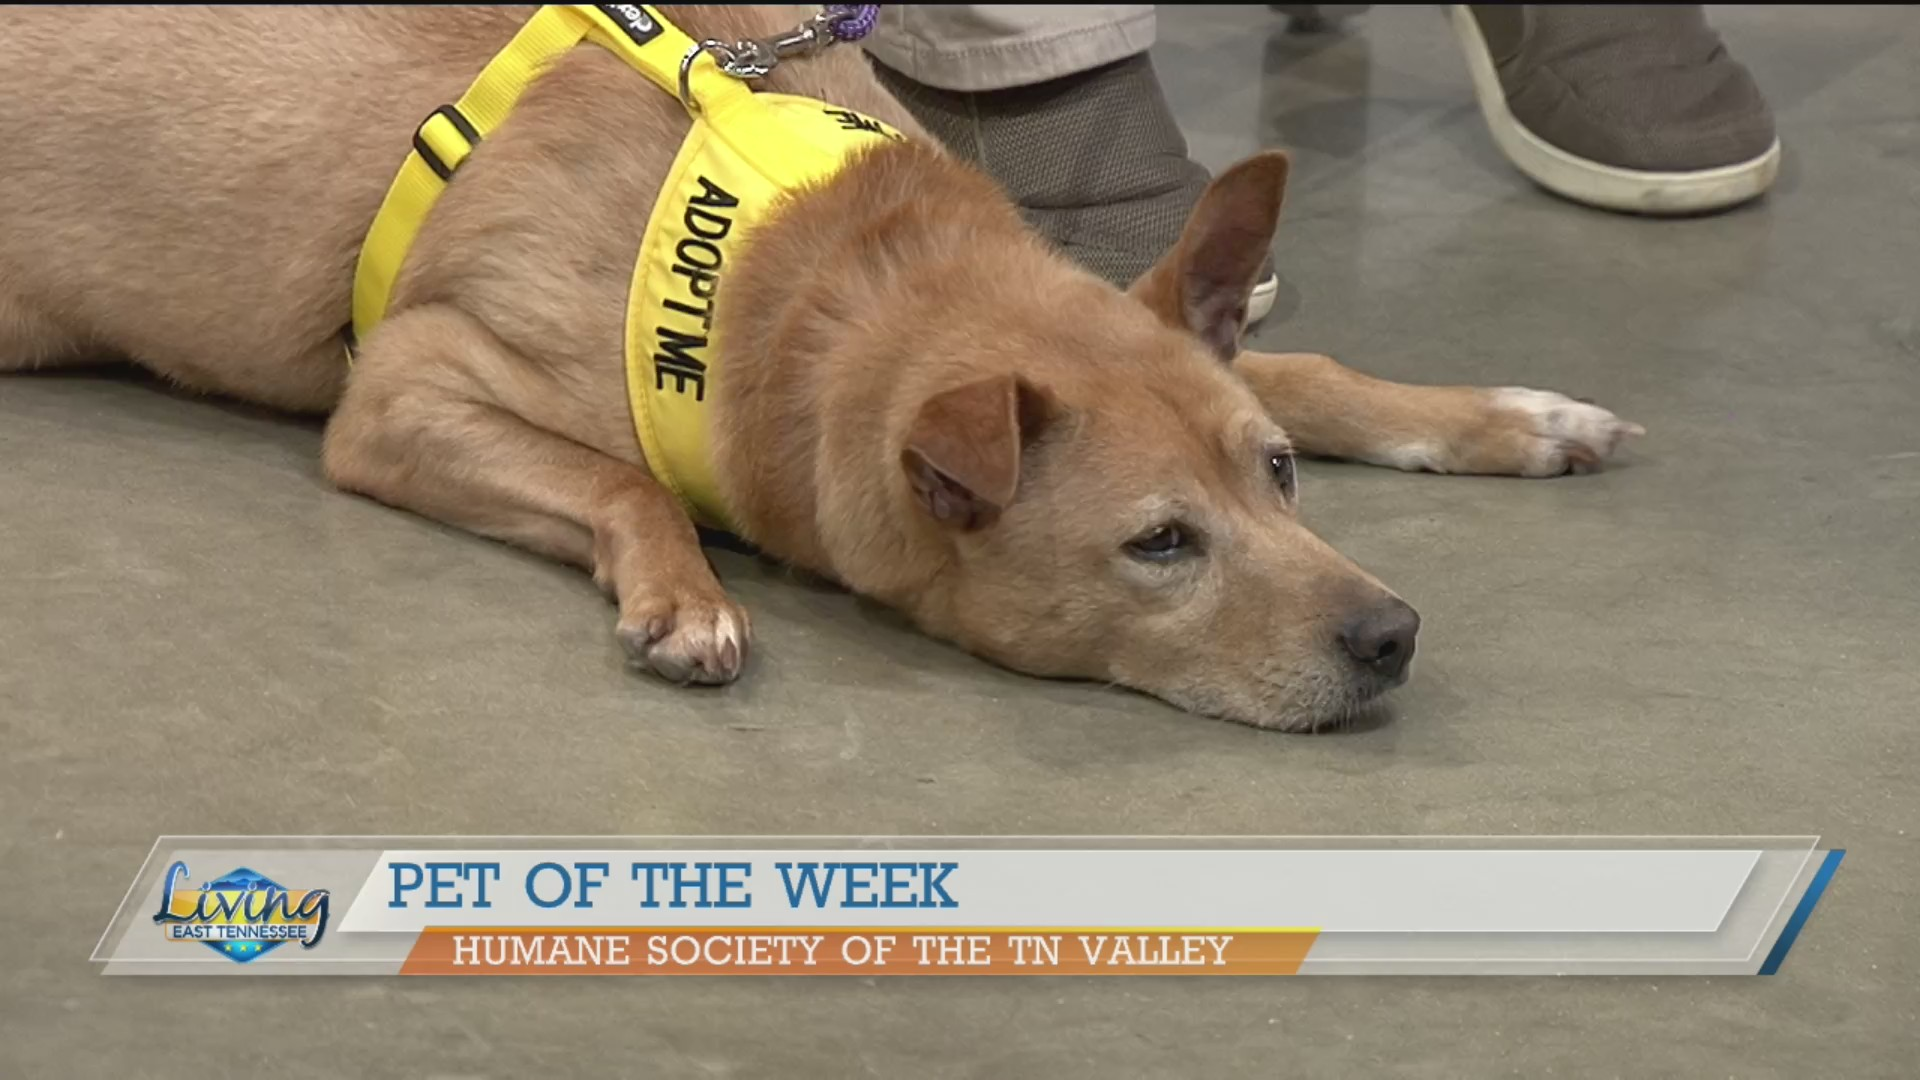 Pet of the Week: Poly is looking for a new family